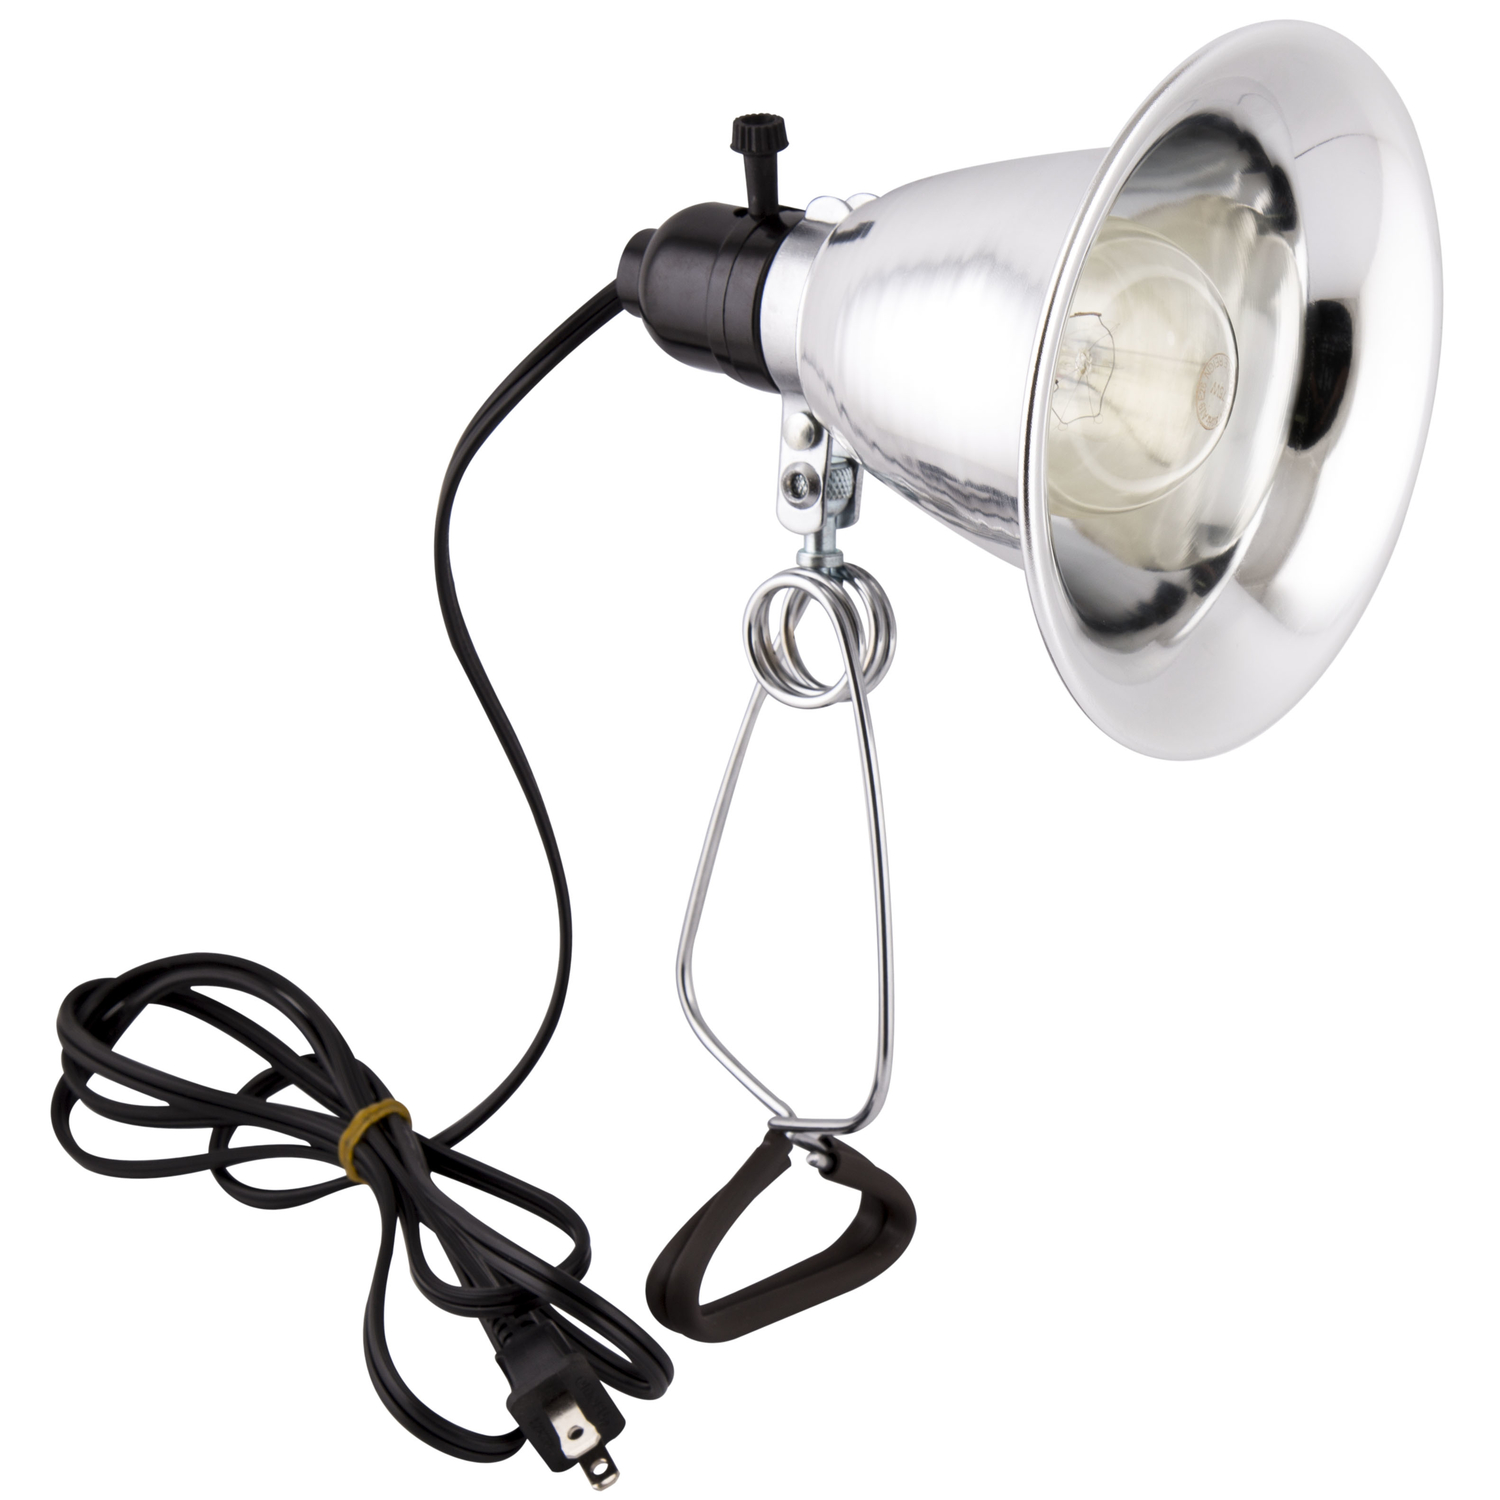 Apollo Horticulture Purple Reign 150 Watt Clip Lamp Grow Light with 5.6 Inch Reflector, 6-Foot Cord and Bulb - Clamp Lamp